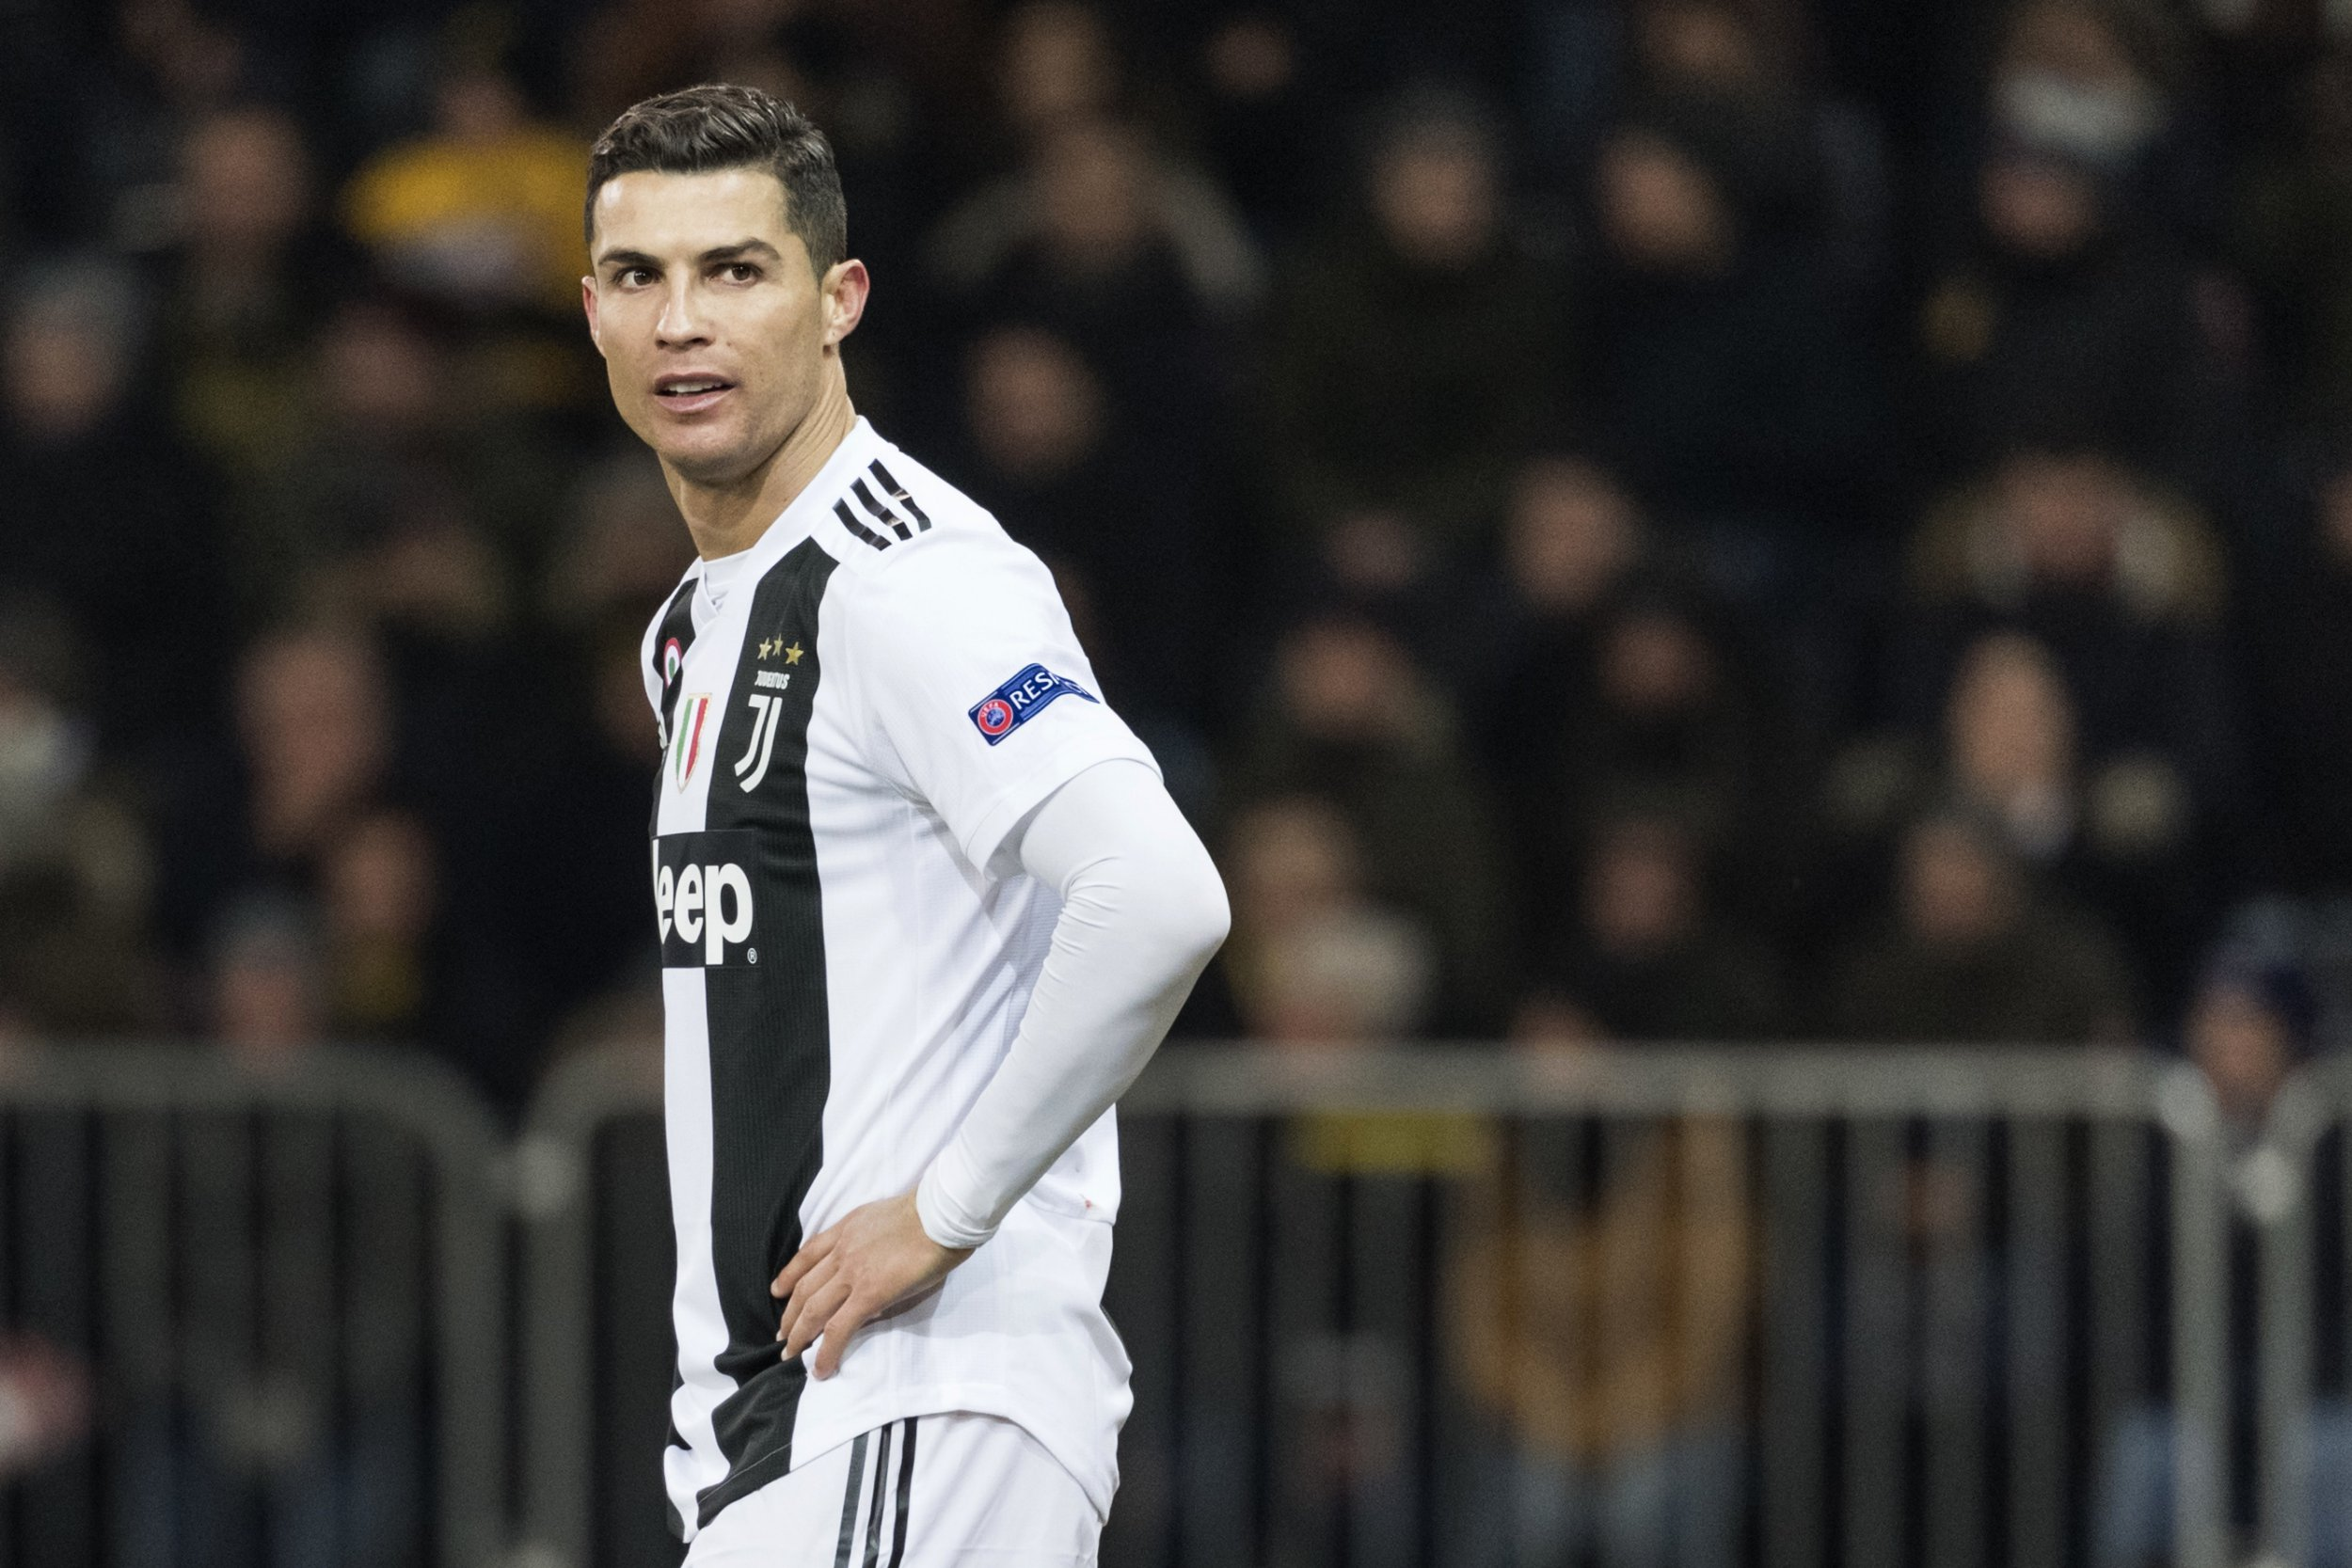 FILE - In this Dec. 12, 2018, file photo, Juventus' Cristiano Ronaldo reacts during the Champions League match at the Stade de Suisse in Bern, Switzerland. Police in Las Vegas say they are still investigating a Nevada woman's claim that Cristiano Ronaldo raped her in his Las Vegas hotel penthouse in 2009. (Alessandro della Valle/Keystone via AP, File)